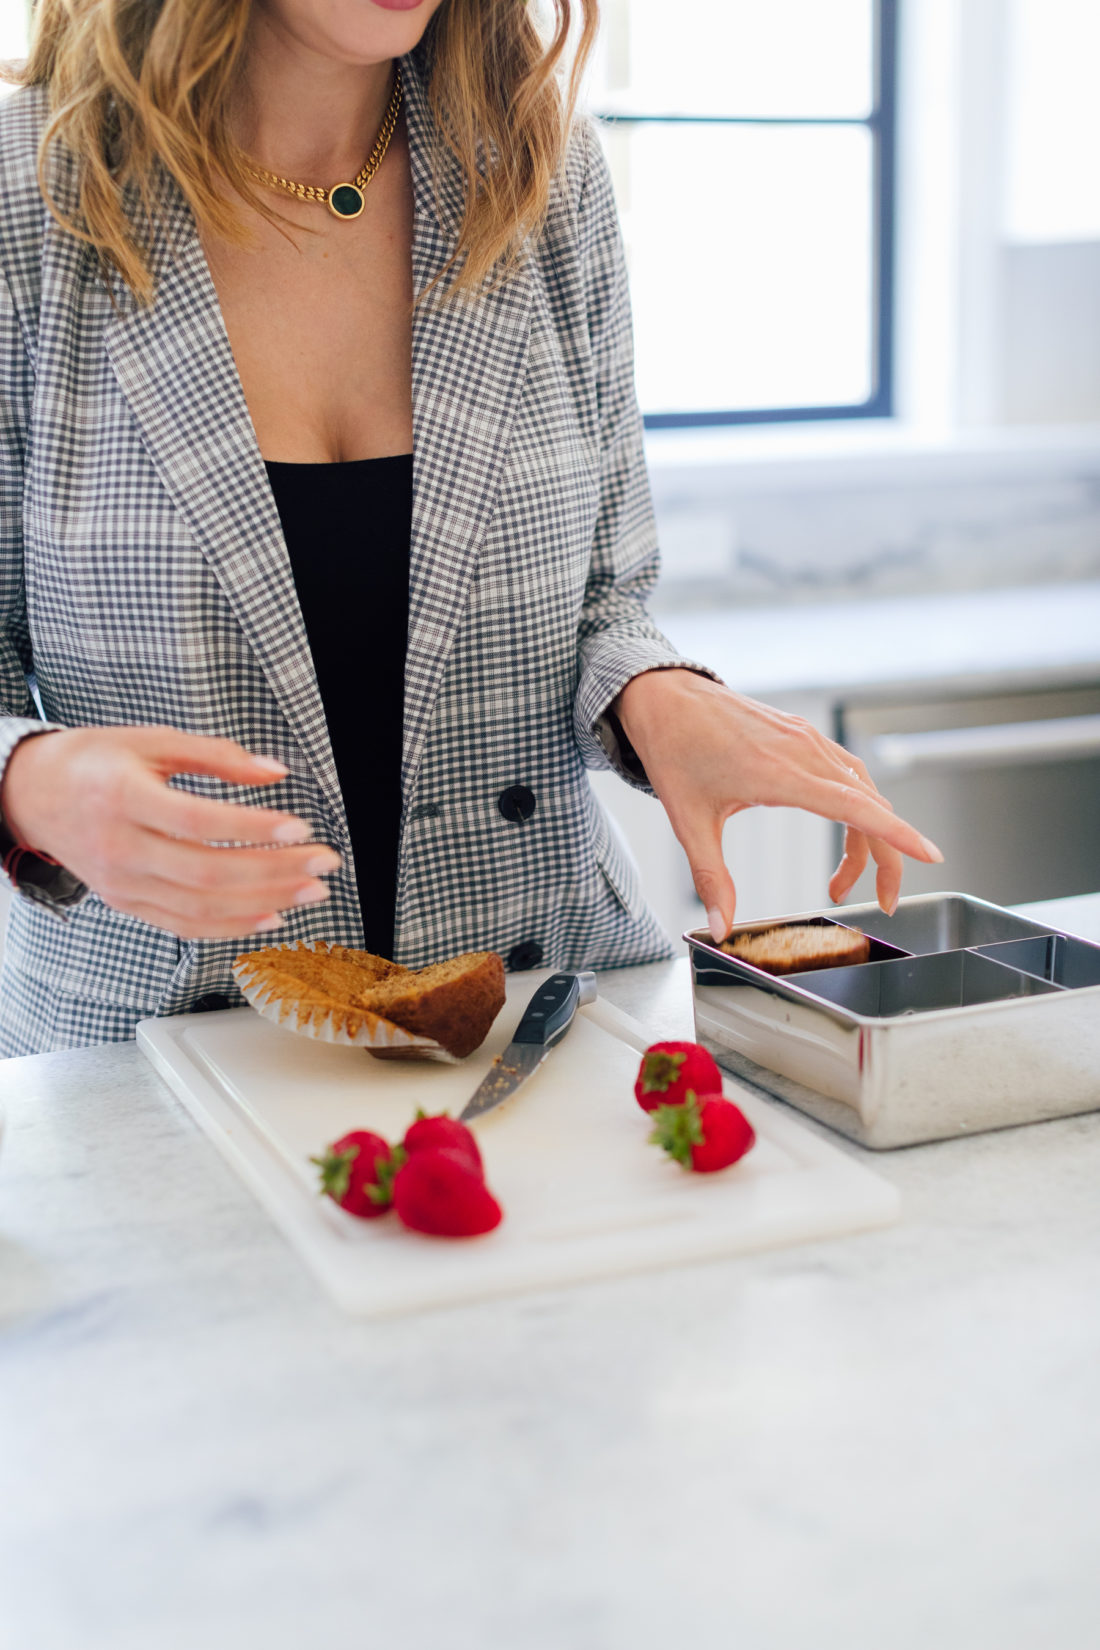 Eva Amurri Martino chops up strawberries for an easy lunch box idea